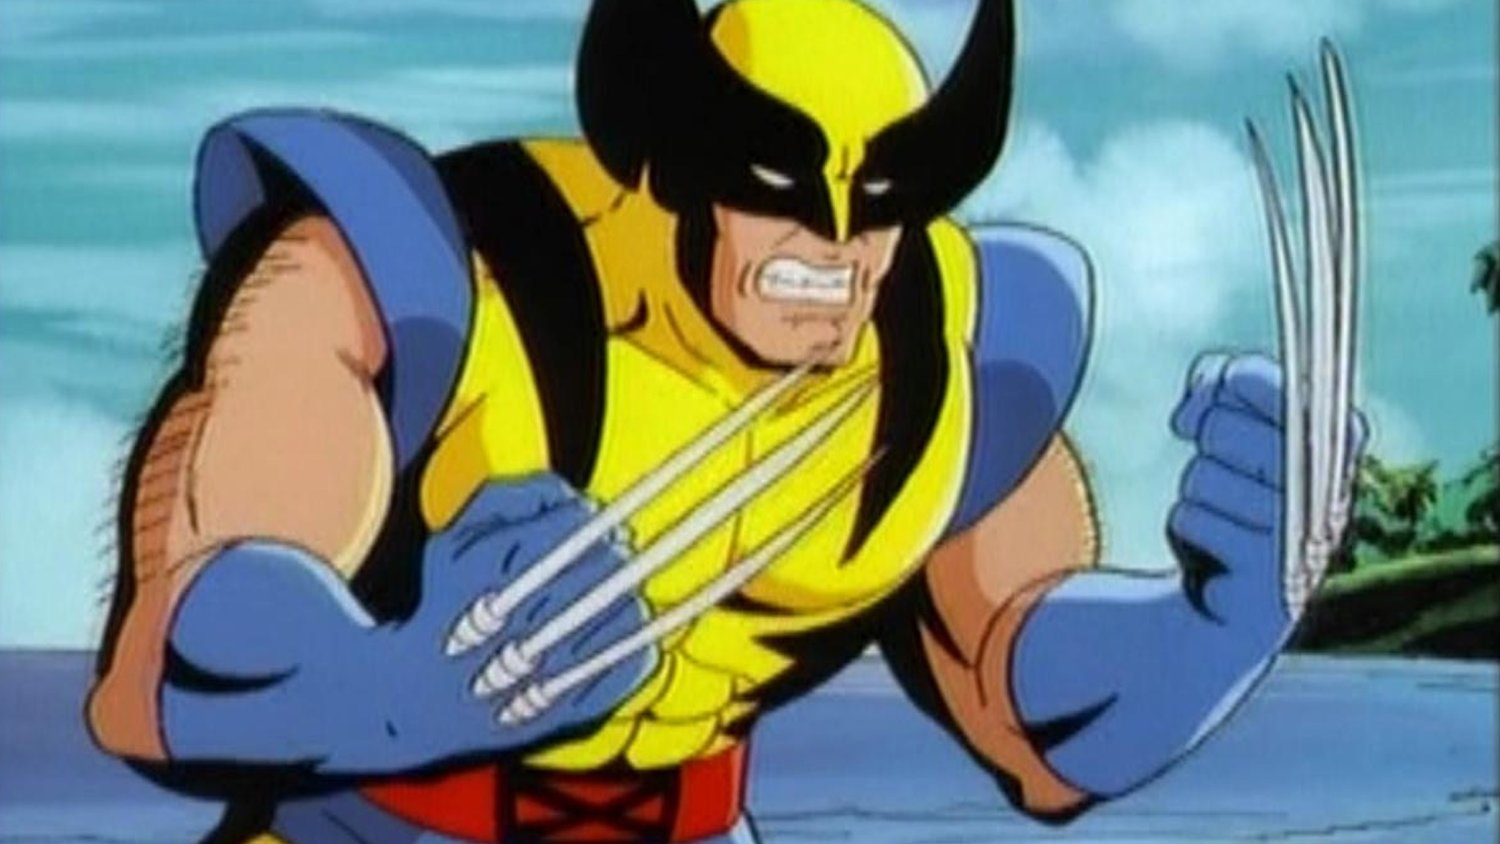 '90s X-MEN Animated Series Actor Talks About Voicing Wolverine and His Struggle to Let the Character Go